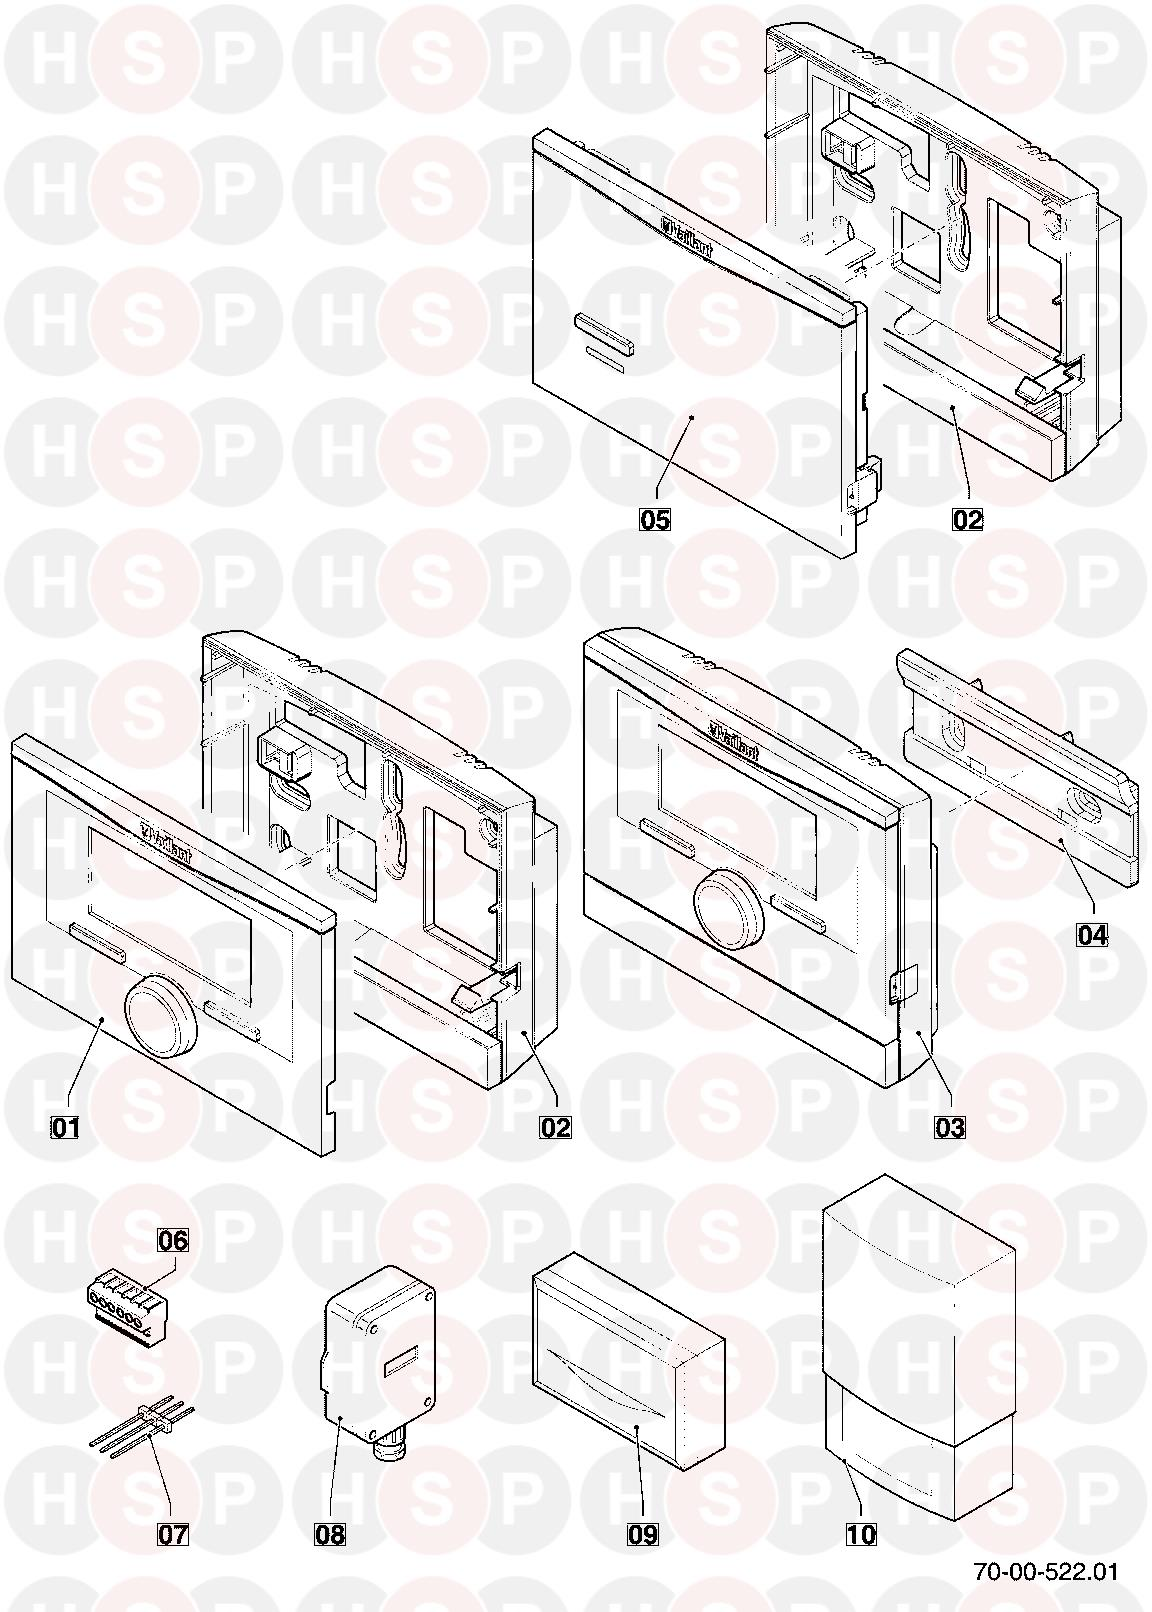 Vaillant Vrc 470 2011 2015 Diagram Heating System Boiler Wiring Click The To Open It On A New Page